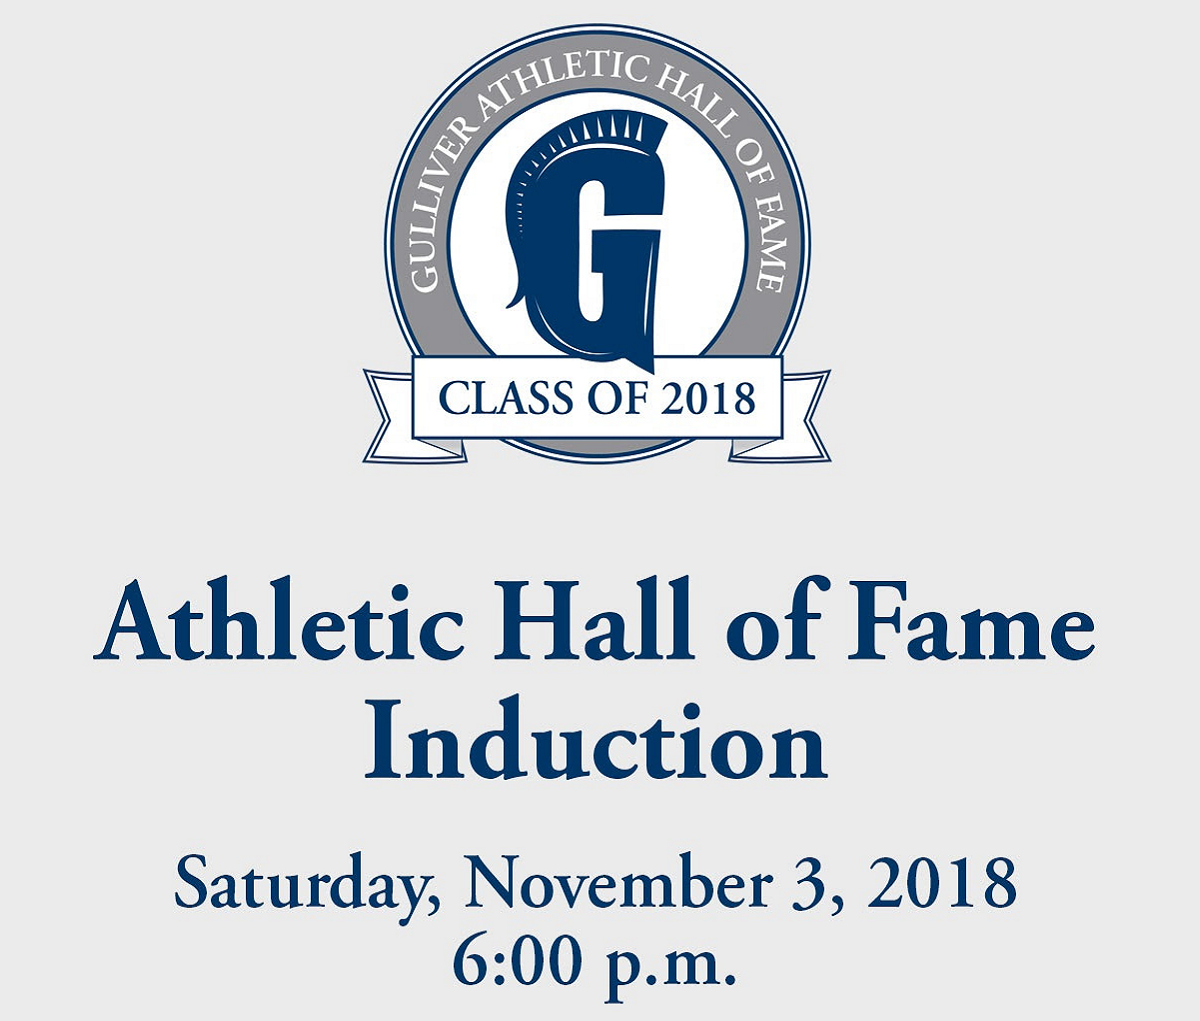 Athletic Hall of Fame Induction: Saturday, November 3, 6:00 p.m.